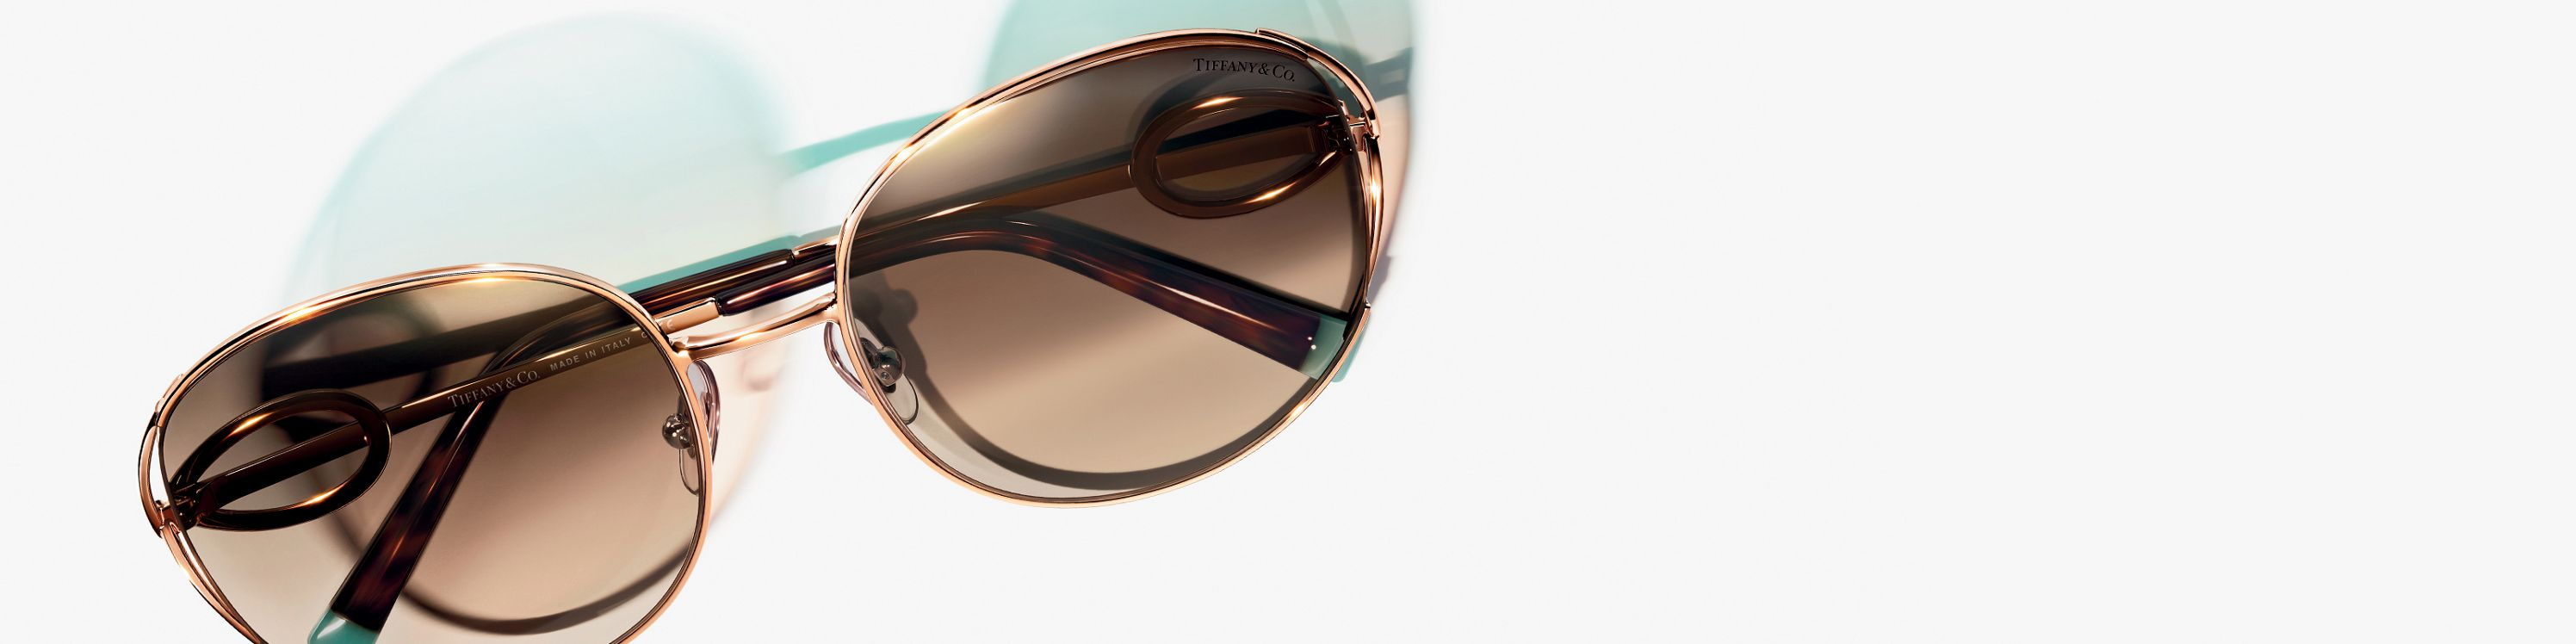 92299c58feb8 Eyewear & Sunglasses | Tiffany & Co.